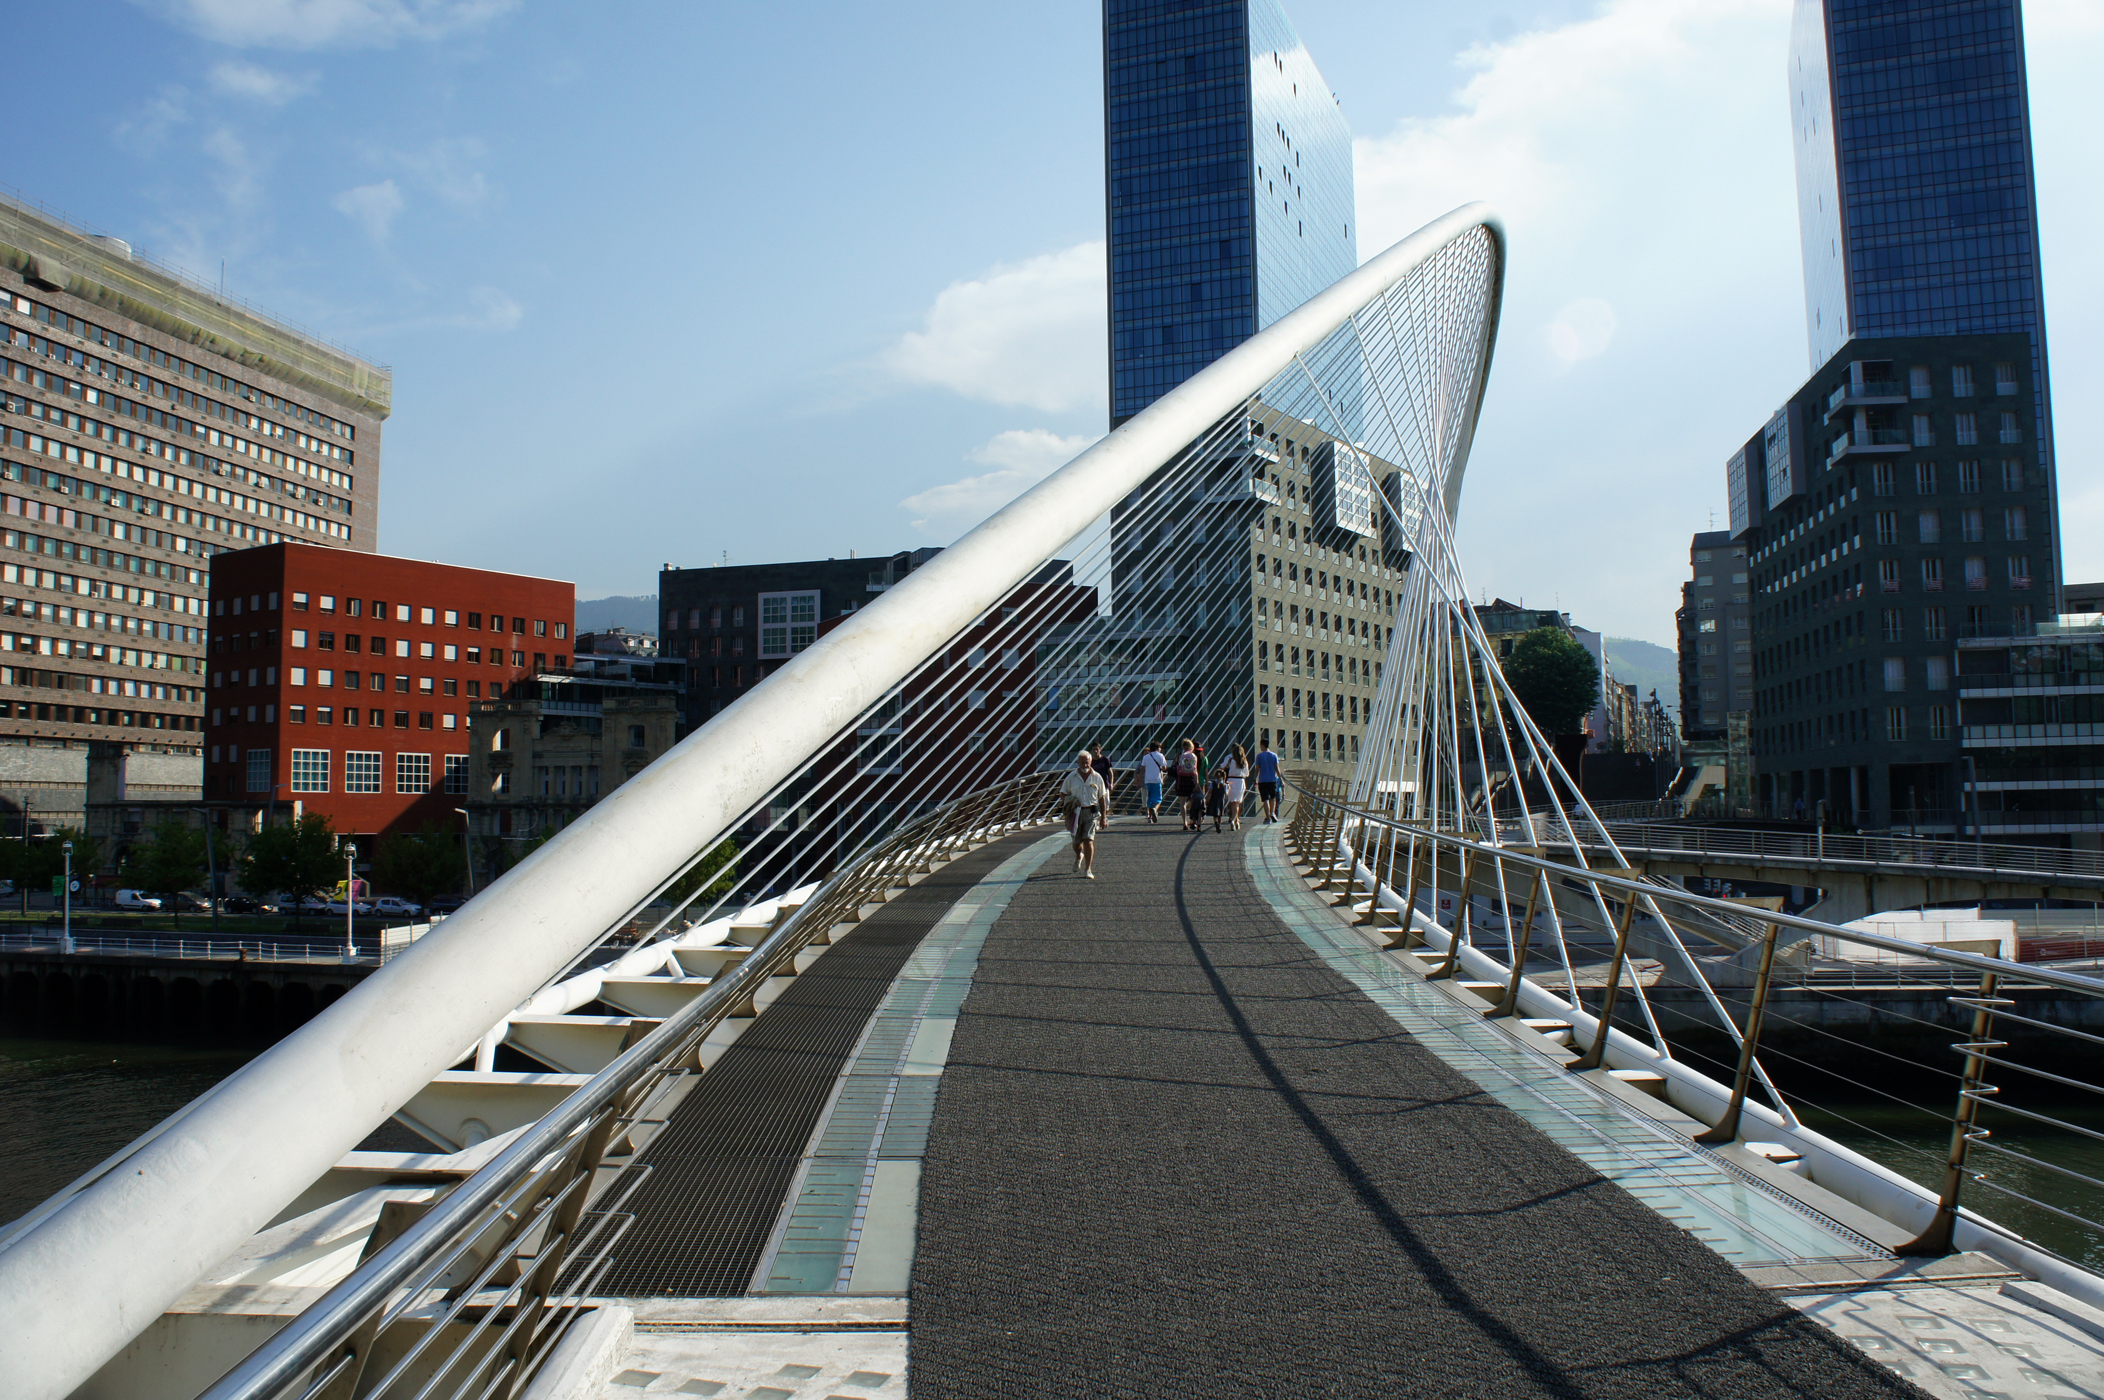 https://upload.wikimedia.org/wikipedia/commons/7/77/Bilbao_06_2012_Zubizuri_bridge_2645.JPG